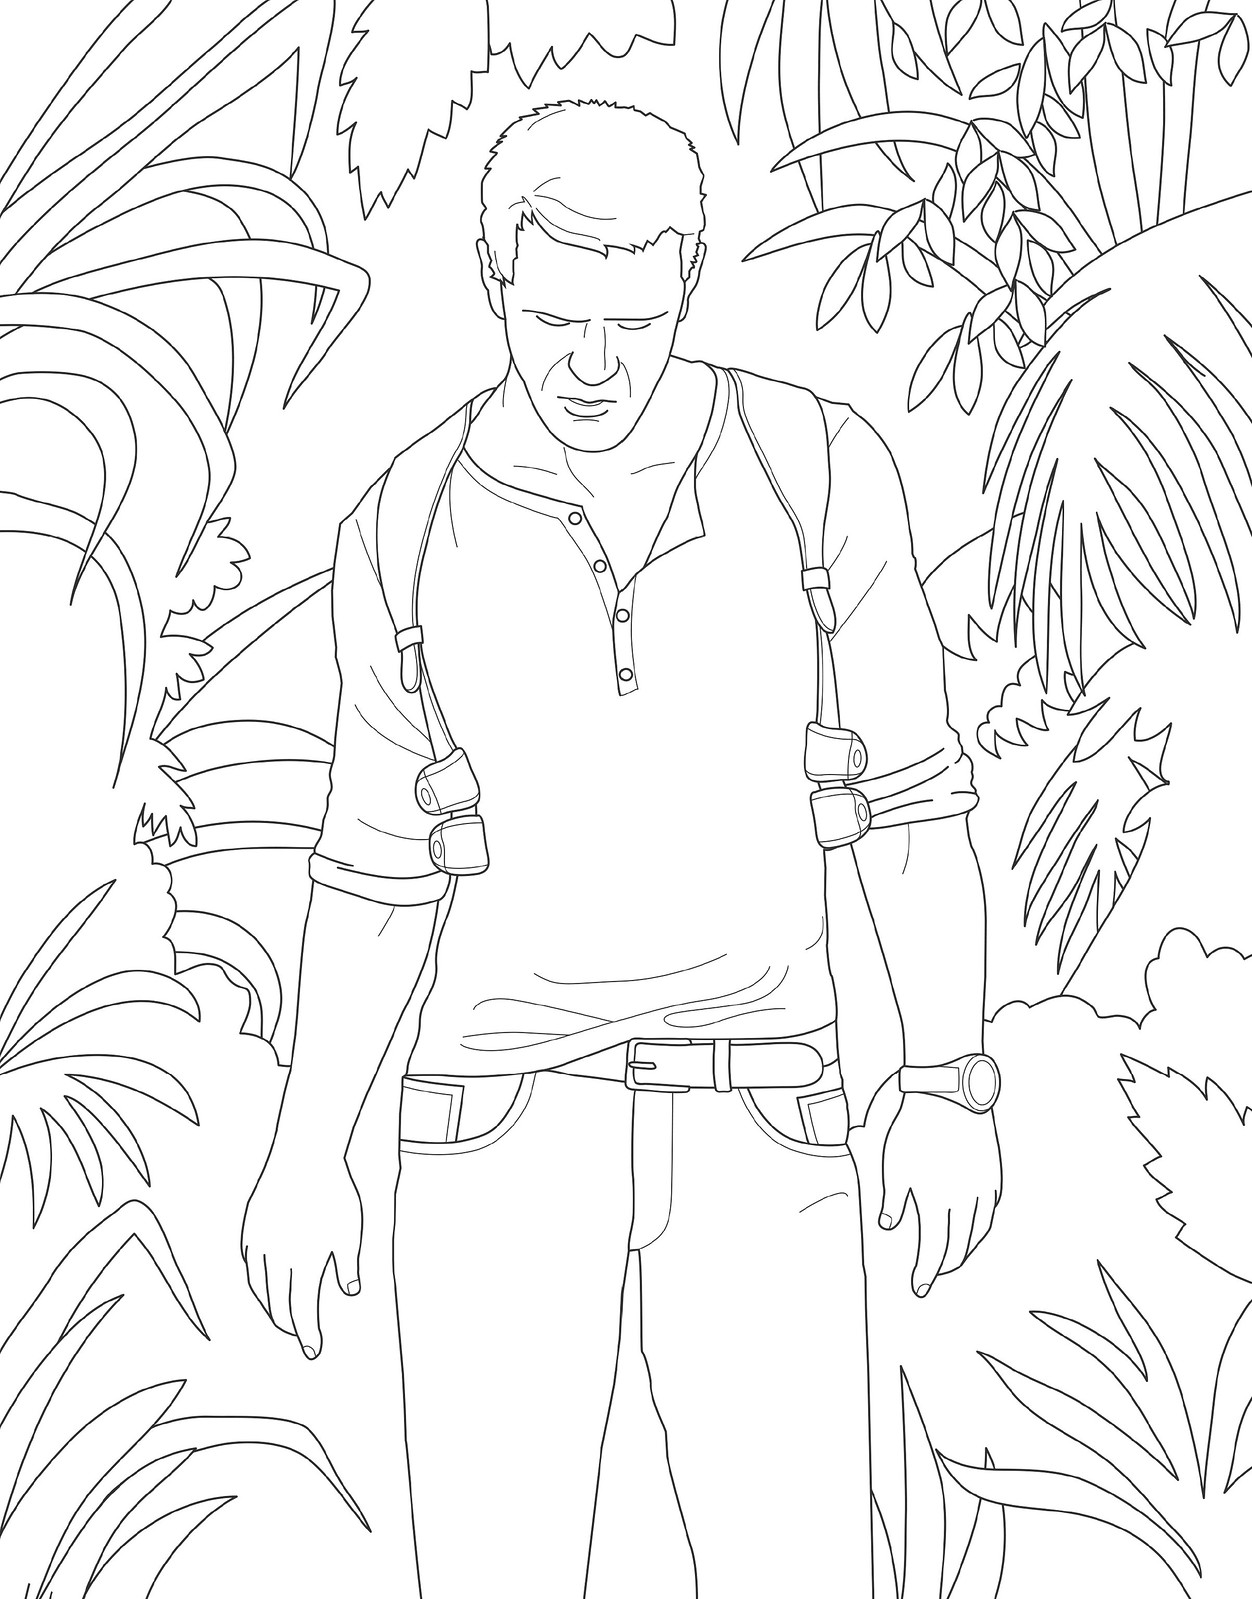 Get Creative With Playstation Colouring Book Art For The